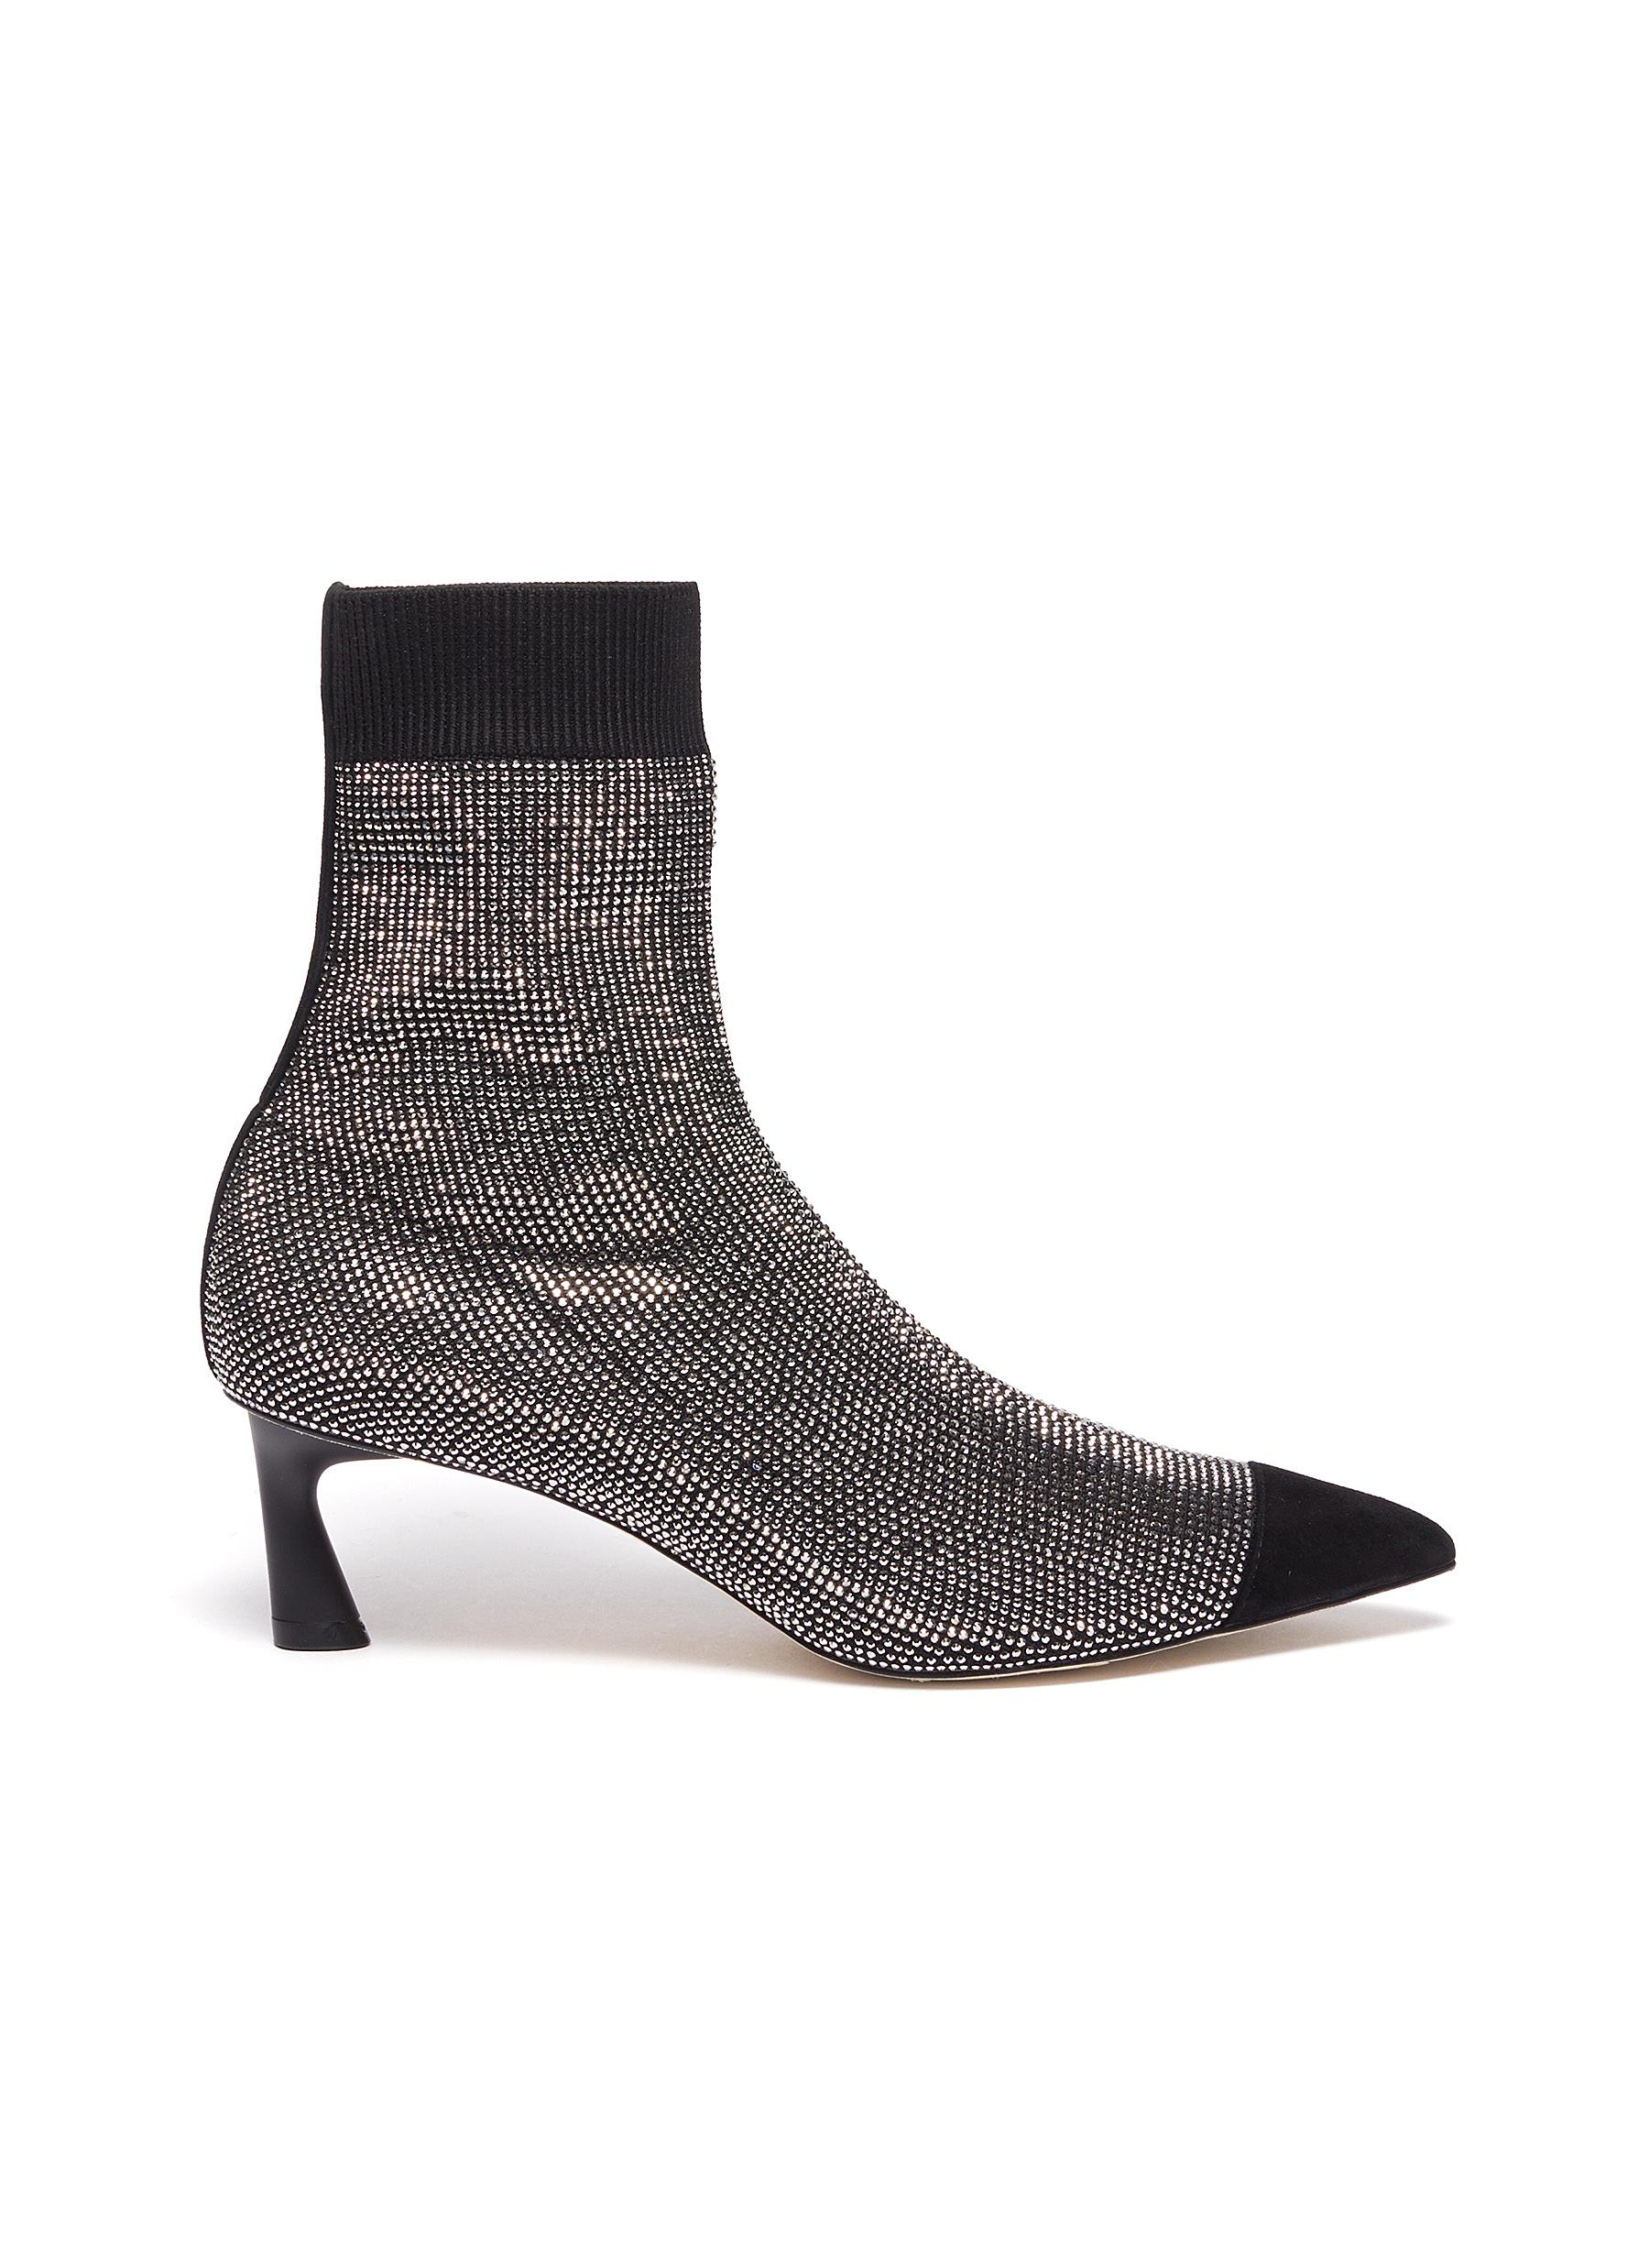 shop Pedder Red 'Bonita' panel toe cap strass sock knit ankle boots online